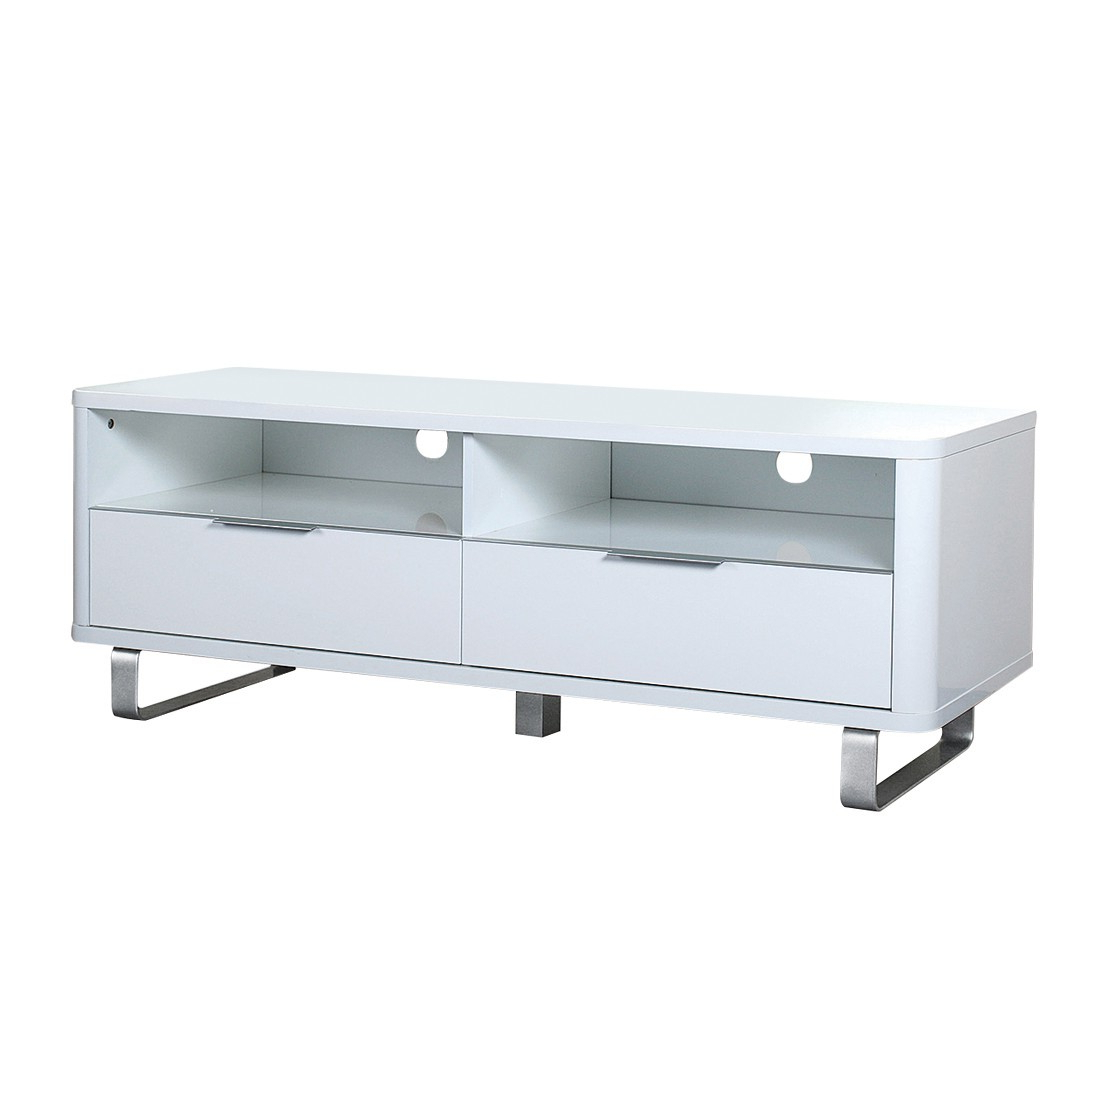 Accent Sideboard White – Furnmart® With Tiva Ladder Tv Stands (View 10 of 11)